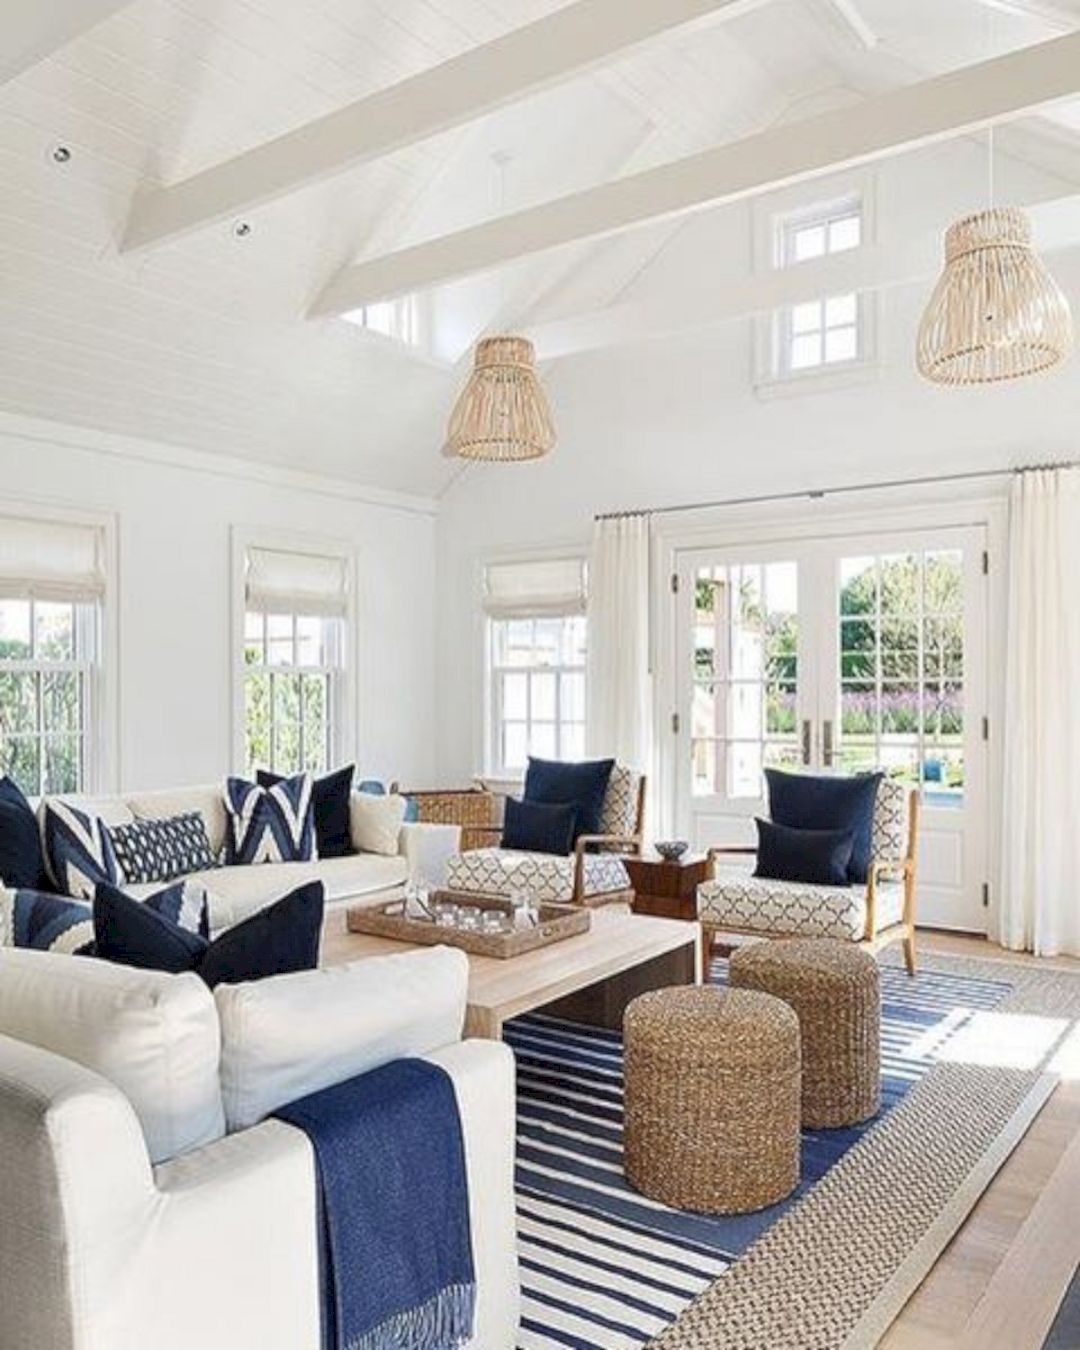 15 Decorating Ideas For A Chic Family Room Coastal Decorating